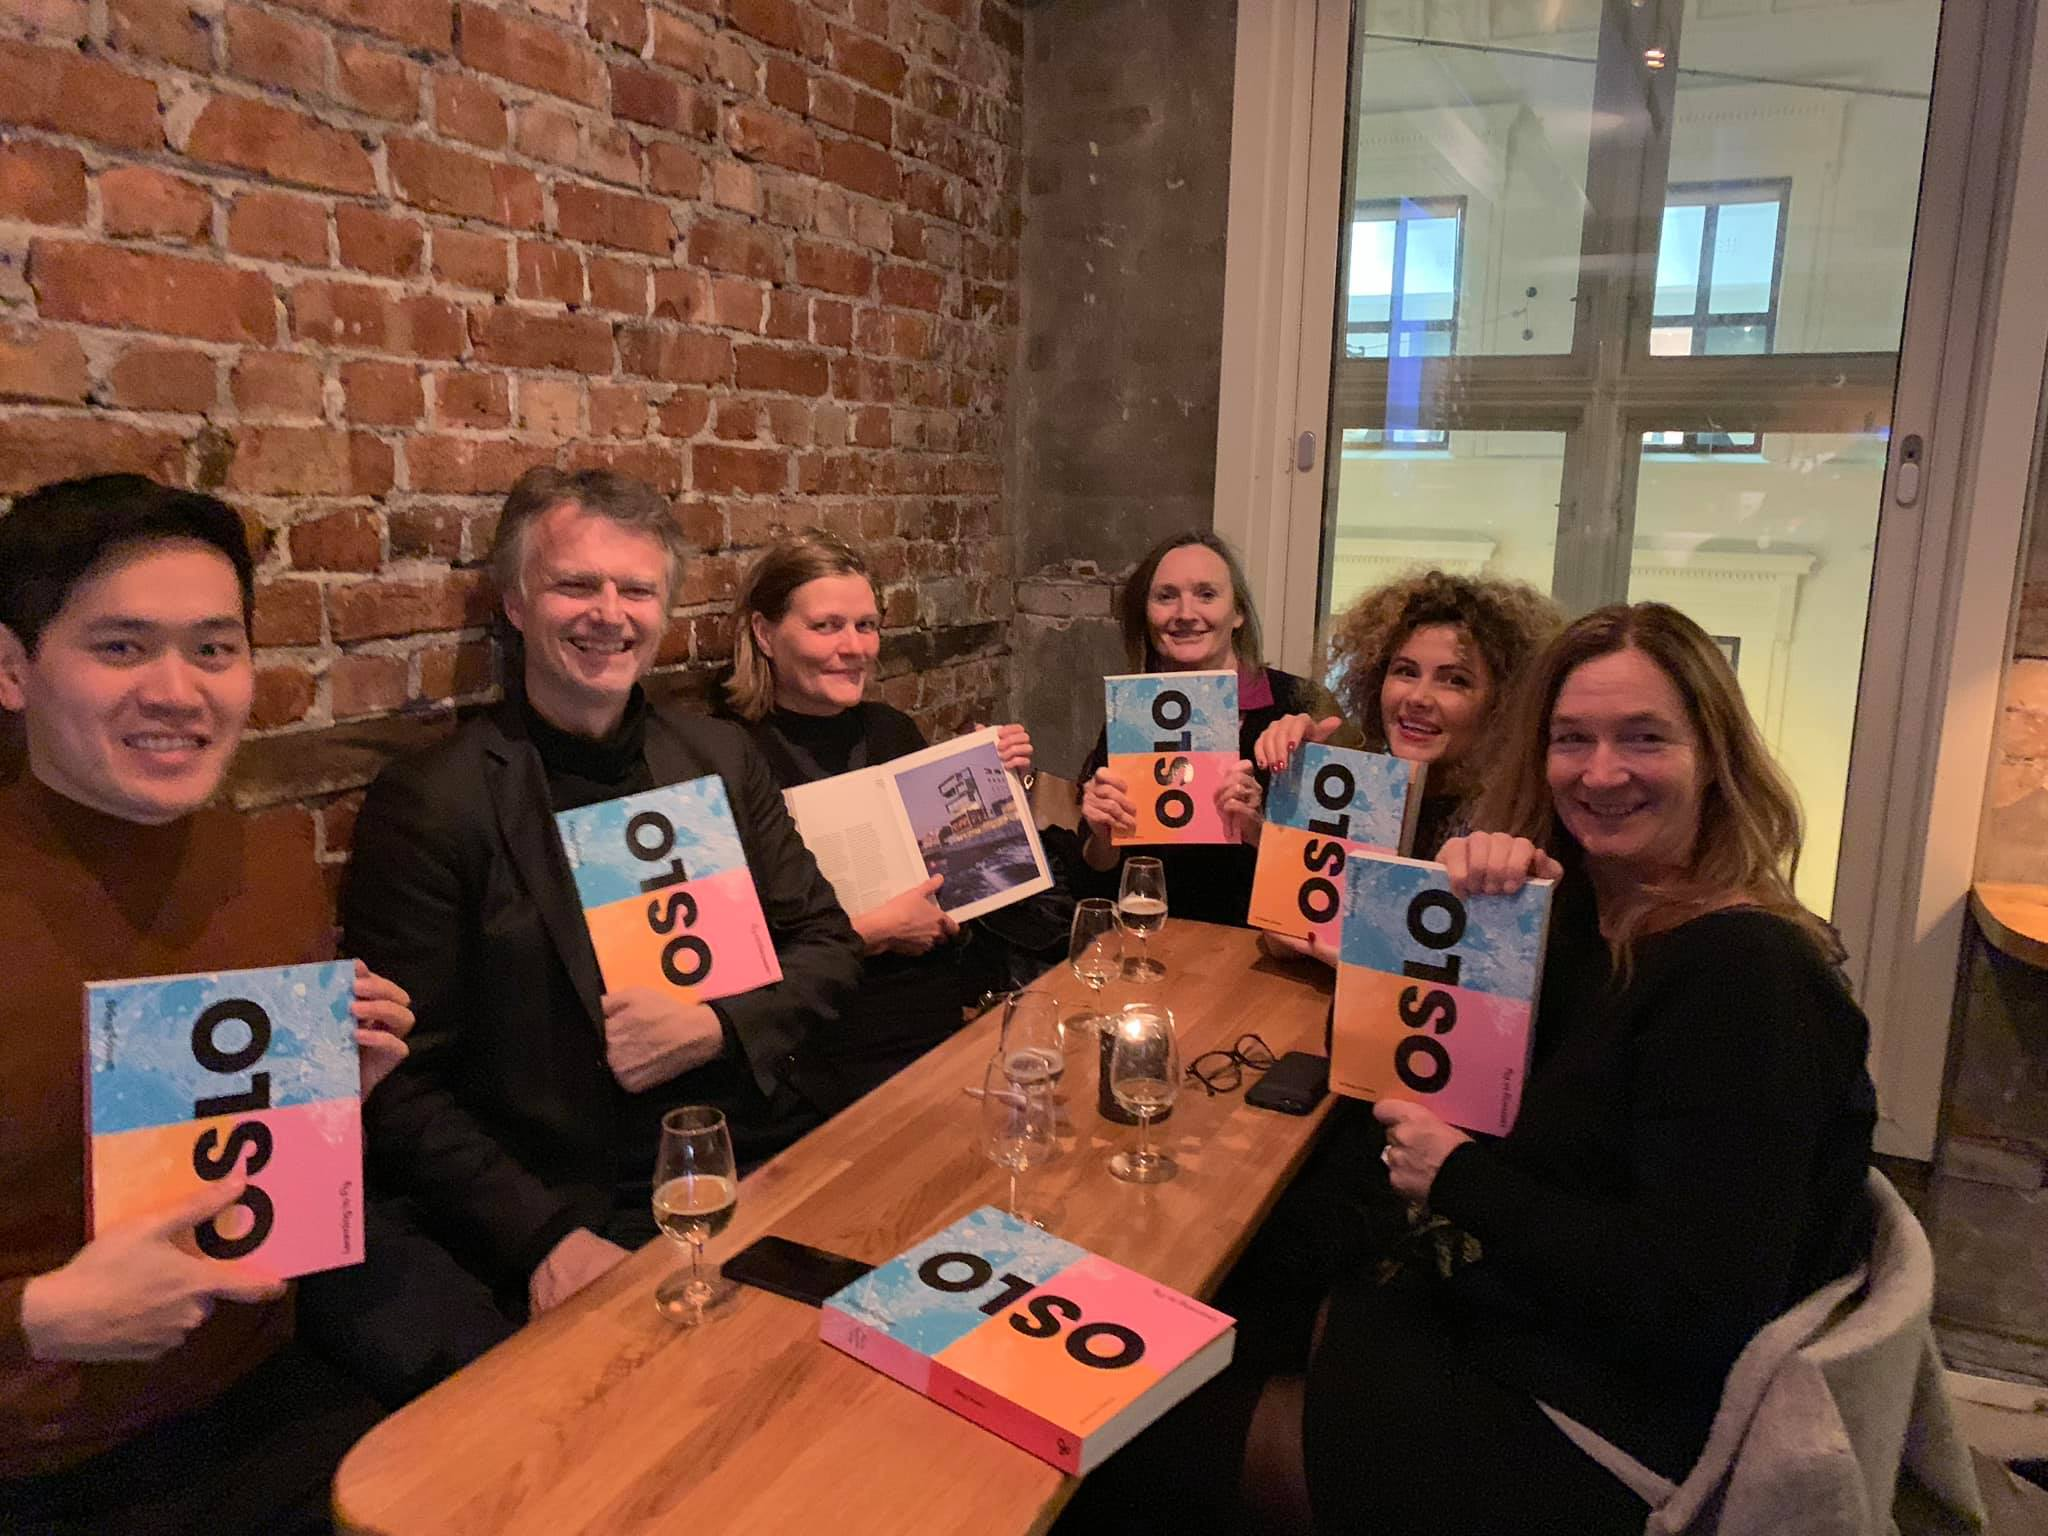 """Oslo - Learning to Fly"", Coming to a Bookstore Near You! - 18.12.2018 - Kulturhuset, Oslo - Oslo - Learning to Fly is Erling Fossen's new book on Oslo city's transformation, encompassing decades, generations and urban ideologies. The book attempts to summarise a not-seen-before collection of minor and major projects from the past, present and future! Tin was one of the 29 contributors (millenials category) in the book, with the title ""Enriching the Urban Vocabulary"". Tin's contribution talks a lil' bit about Barcode, Mesh, Bergen Media City in a span of 1 page. Tin applauds Erling Fossen for his structure of the book; for how he spend 50% of it on pictures, 25% on contributions from others, and the rest he writes himself in as the sole author of the book! Nice bizniz tactics, Erling; minimum effort, maximum reward! No royalties whatsoever, were discussed among the 29 contributors.From the left; Tin Phan, Erling Fossen, Marianne Skjulhaug, Elin Børrud, Dana Jdid, Anne Beate Hovind. Omg Marianne, close the book - you're out of sync! Other esteemed contributors were among others Ellen de Vibe, Kamzy Gunaratnam, Knut Schreiner etc."